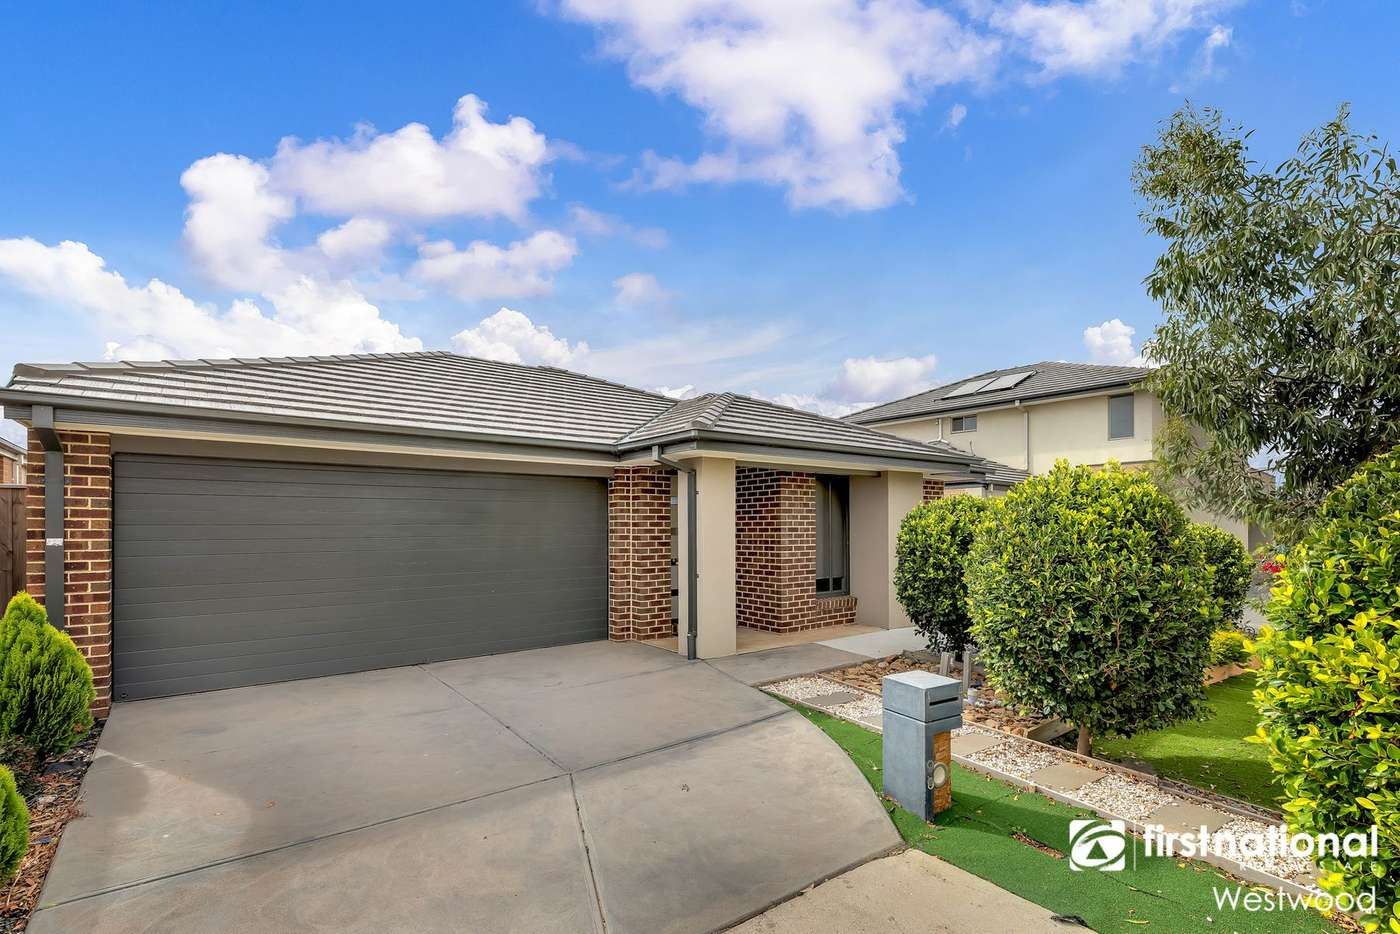 Main view of Homely house listing, 4 Taworri Crescent, Werribee VIC 3030